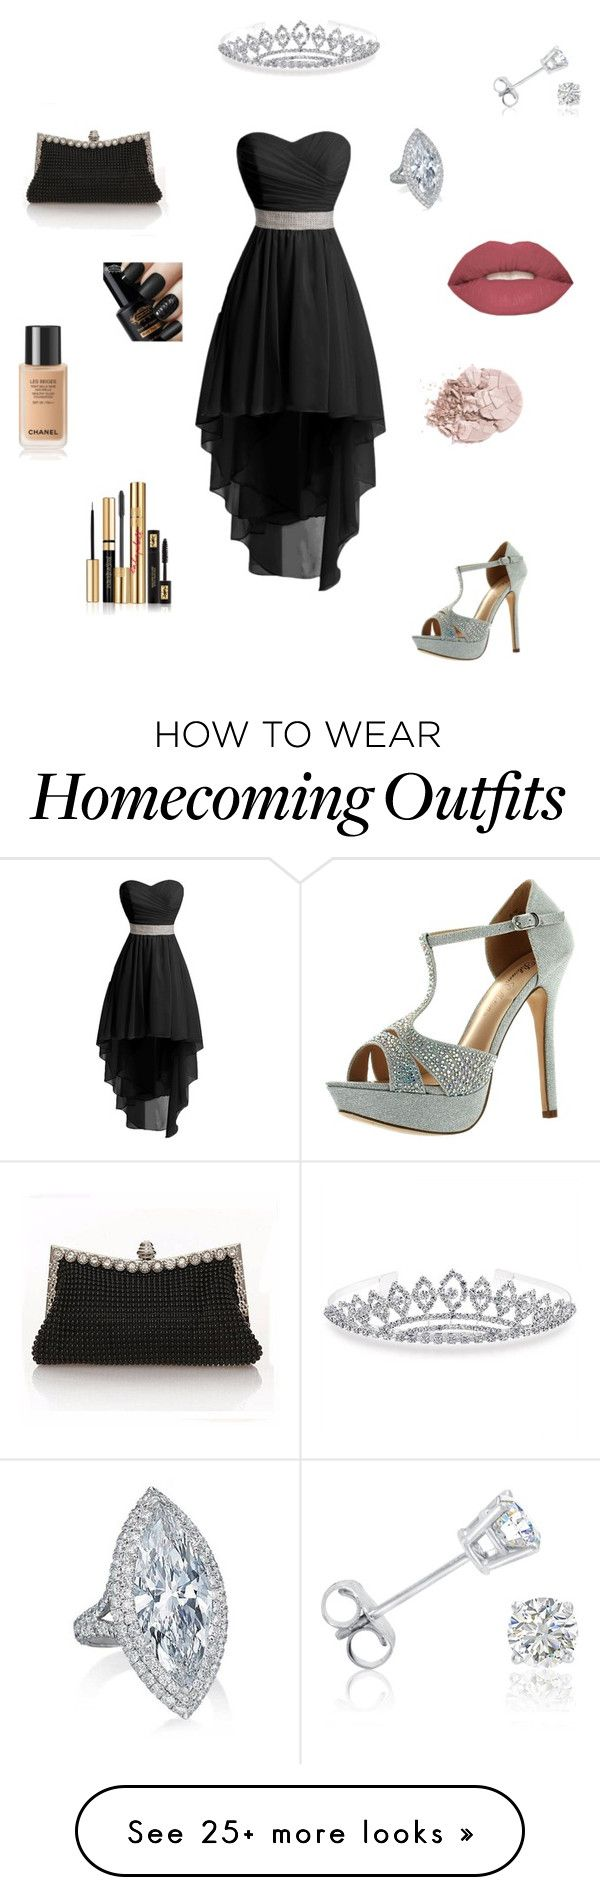 """""""Prom #6"""" by balletlover15 on Polyvore featuring De Blossom, Bling Jewelry, Amanda Rose Collection, Smashbox and Yves Saint Laurent"""